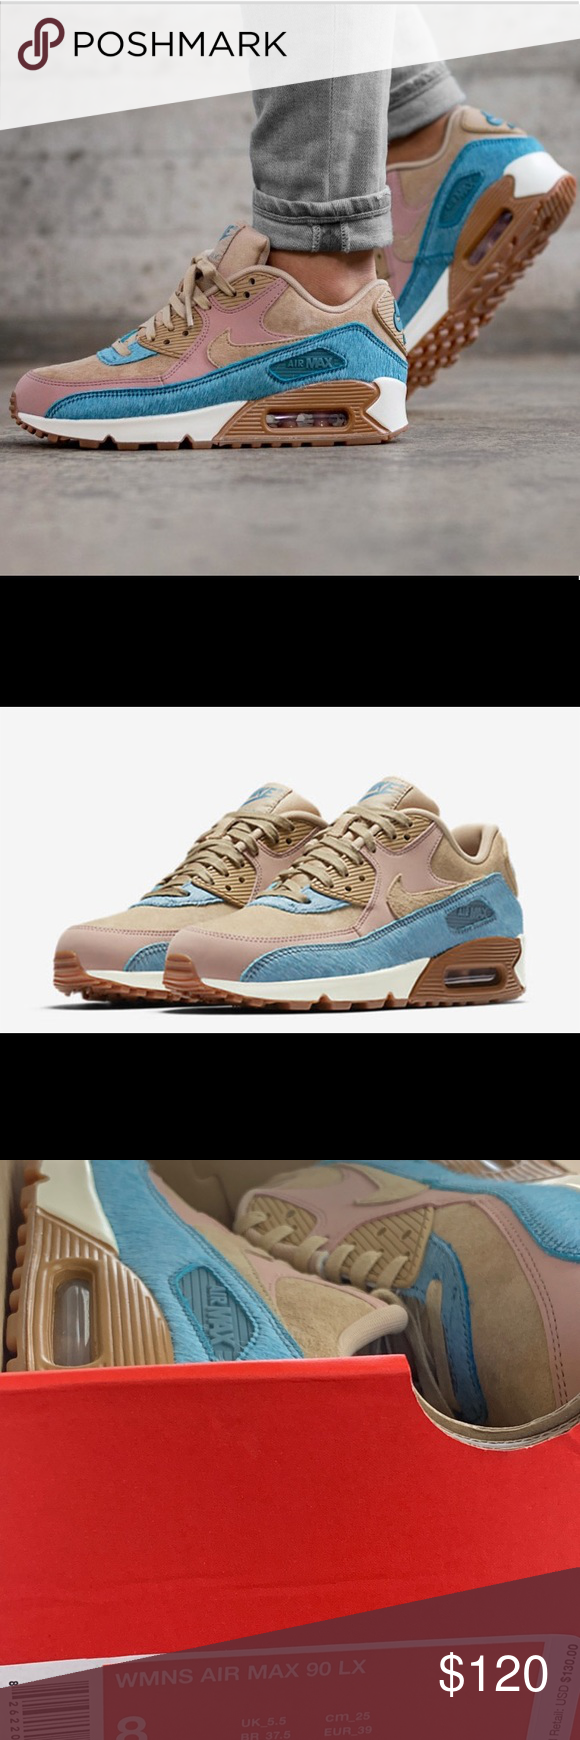 Women's Nike Air Max 90 LX 898512 200 SZ 6 New with original